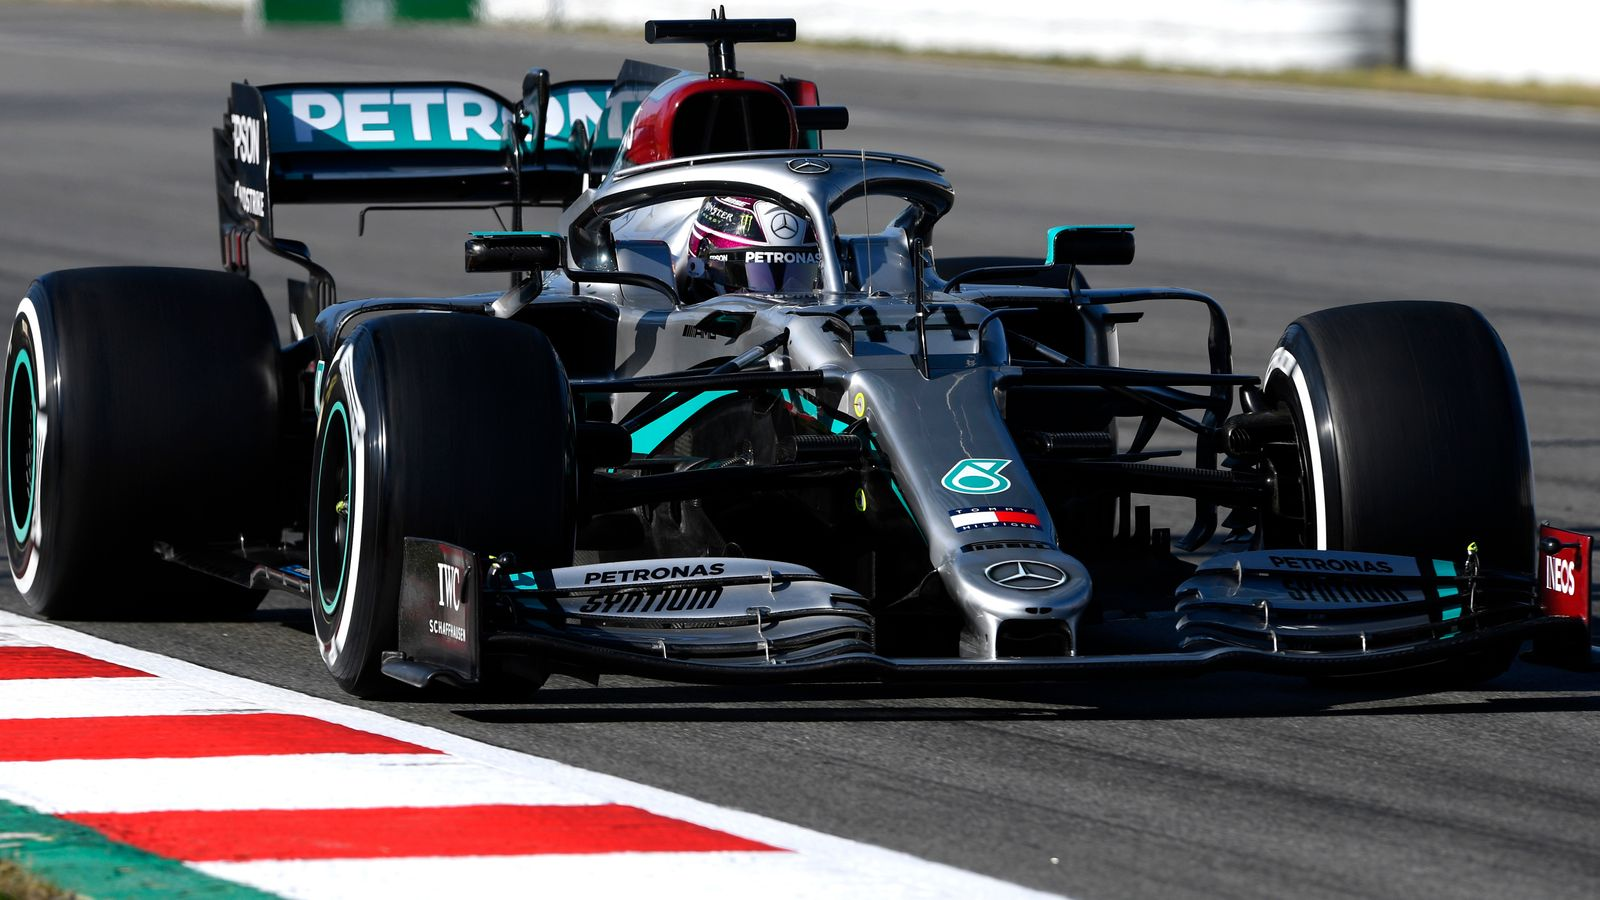 Mercedes' DAS innovation won't be allowed under F1 2021 rules